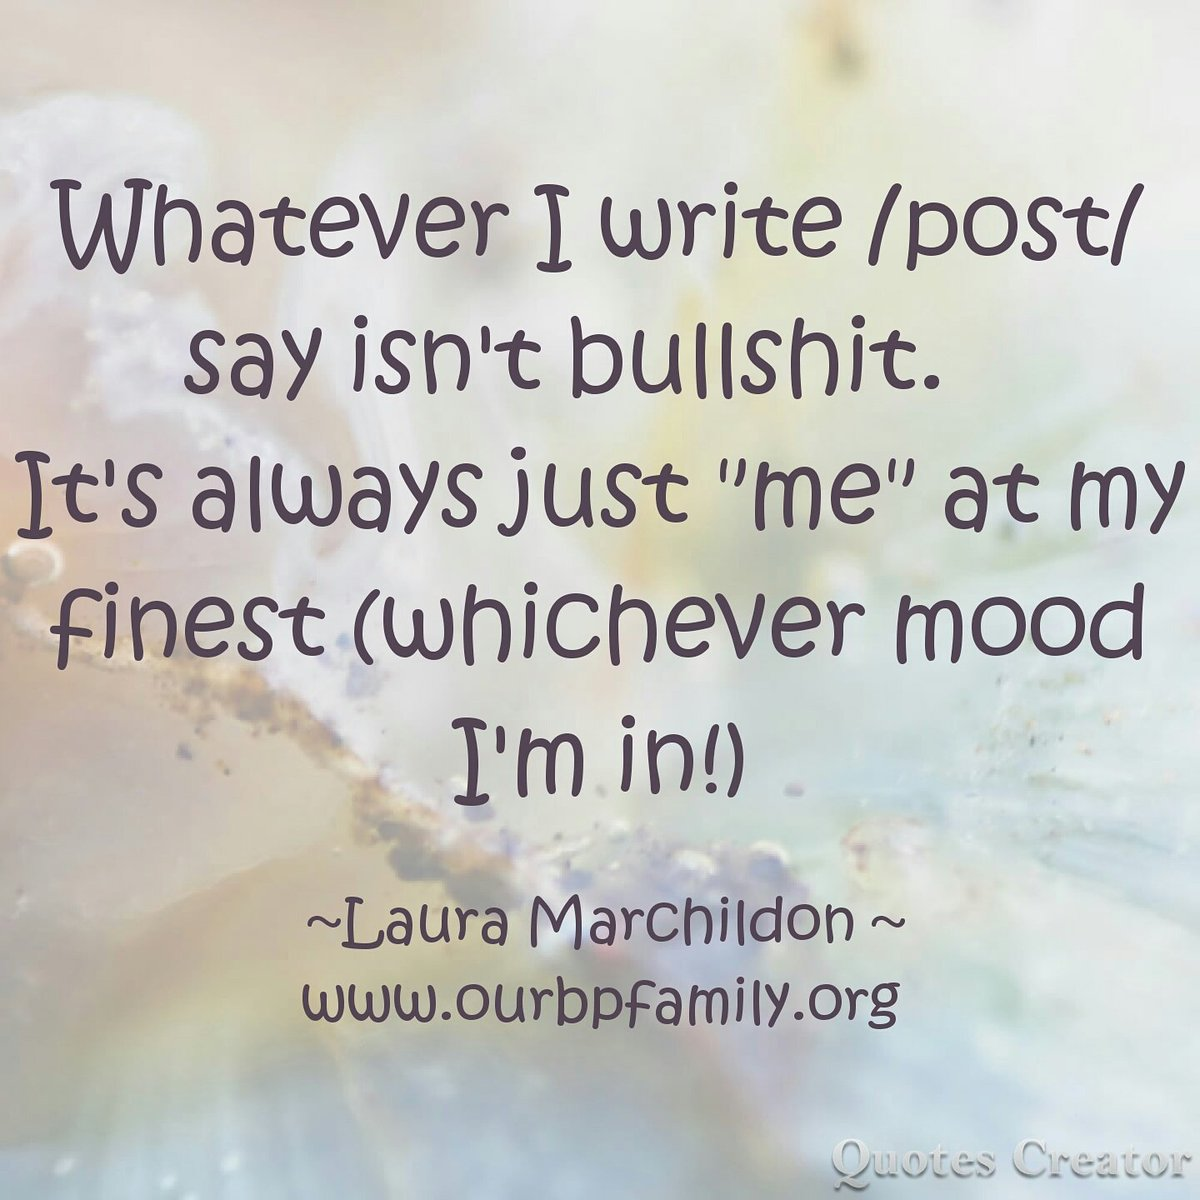 Laura Marchildon On Twitter I Sincerely Share My Life With You